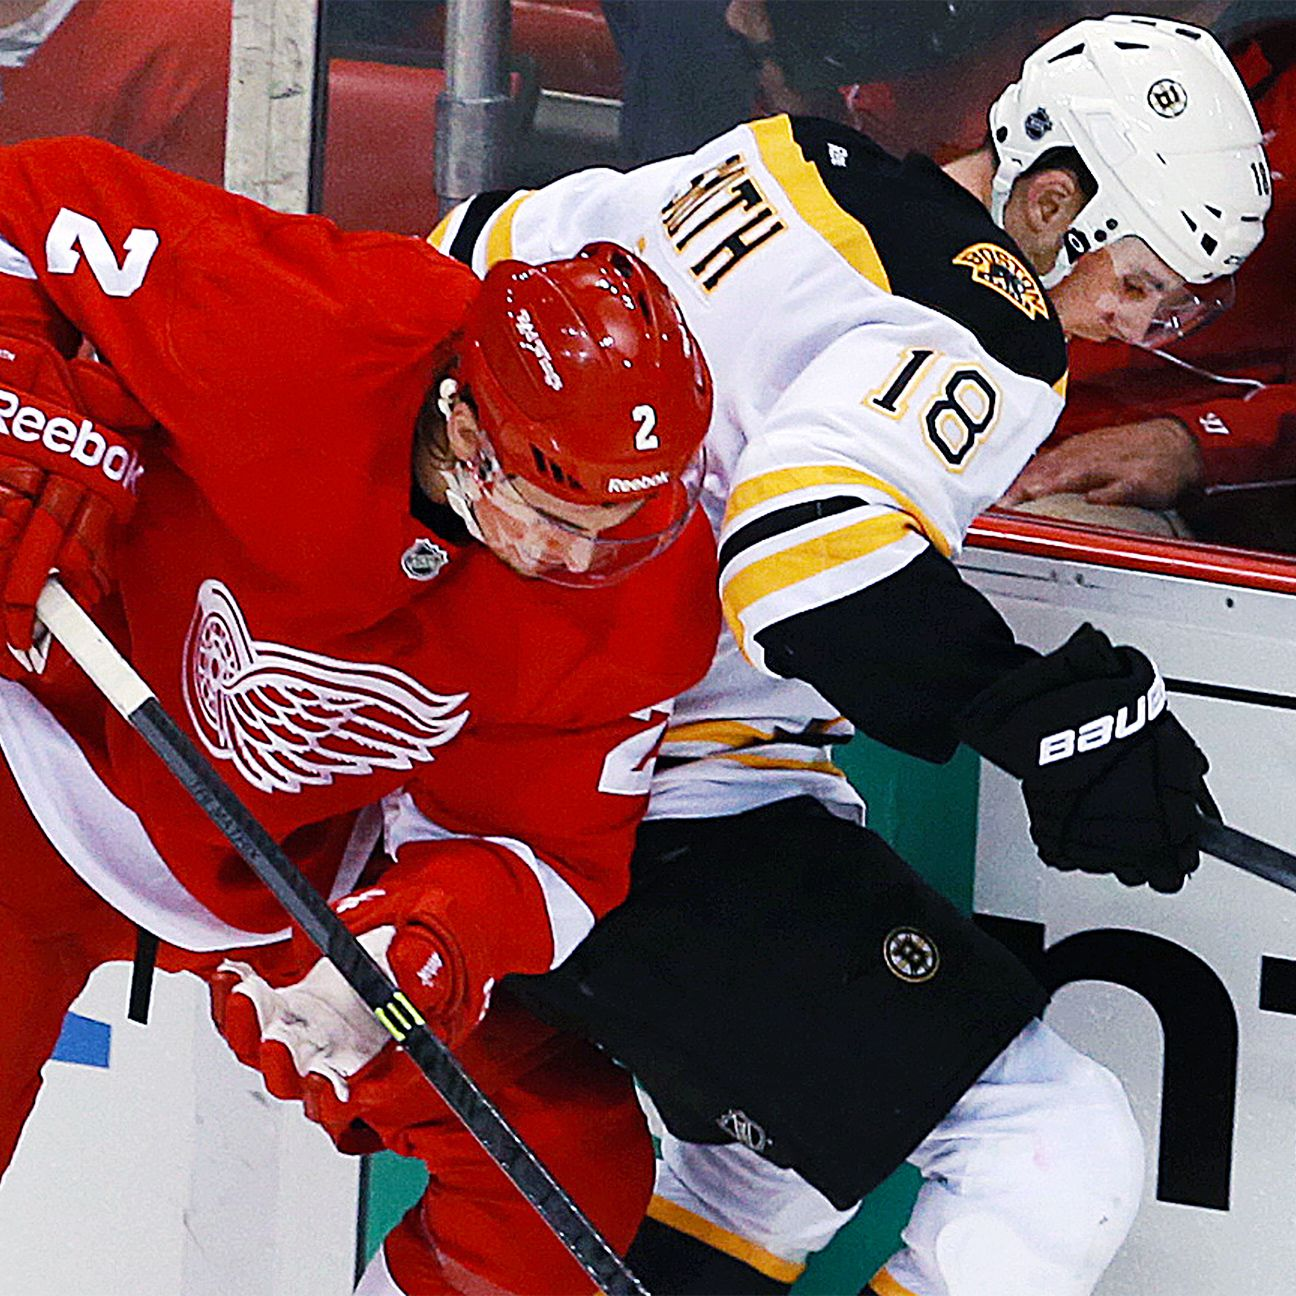 Brothers Smith Face Off: Bruins' Reilly Vs. Red Wings